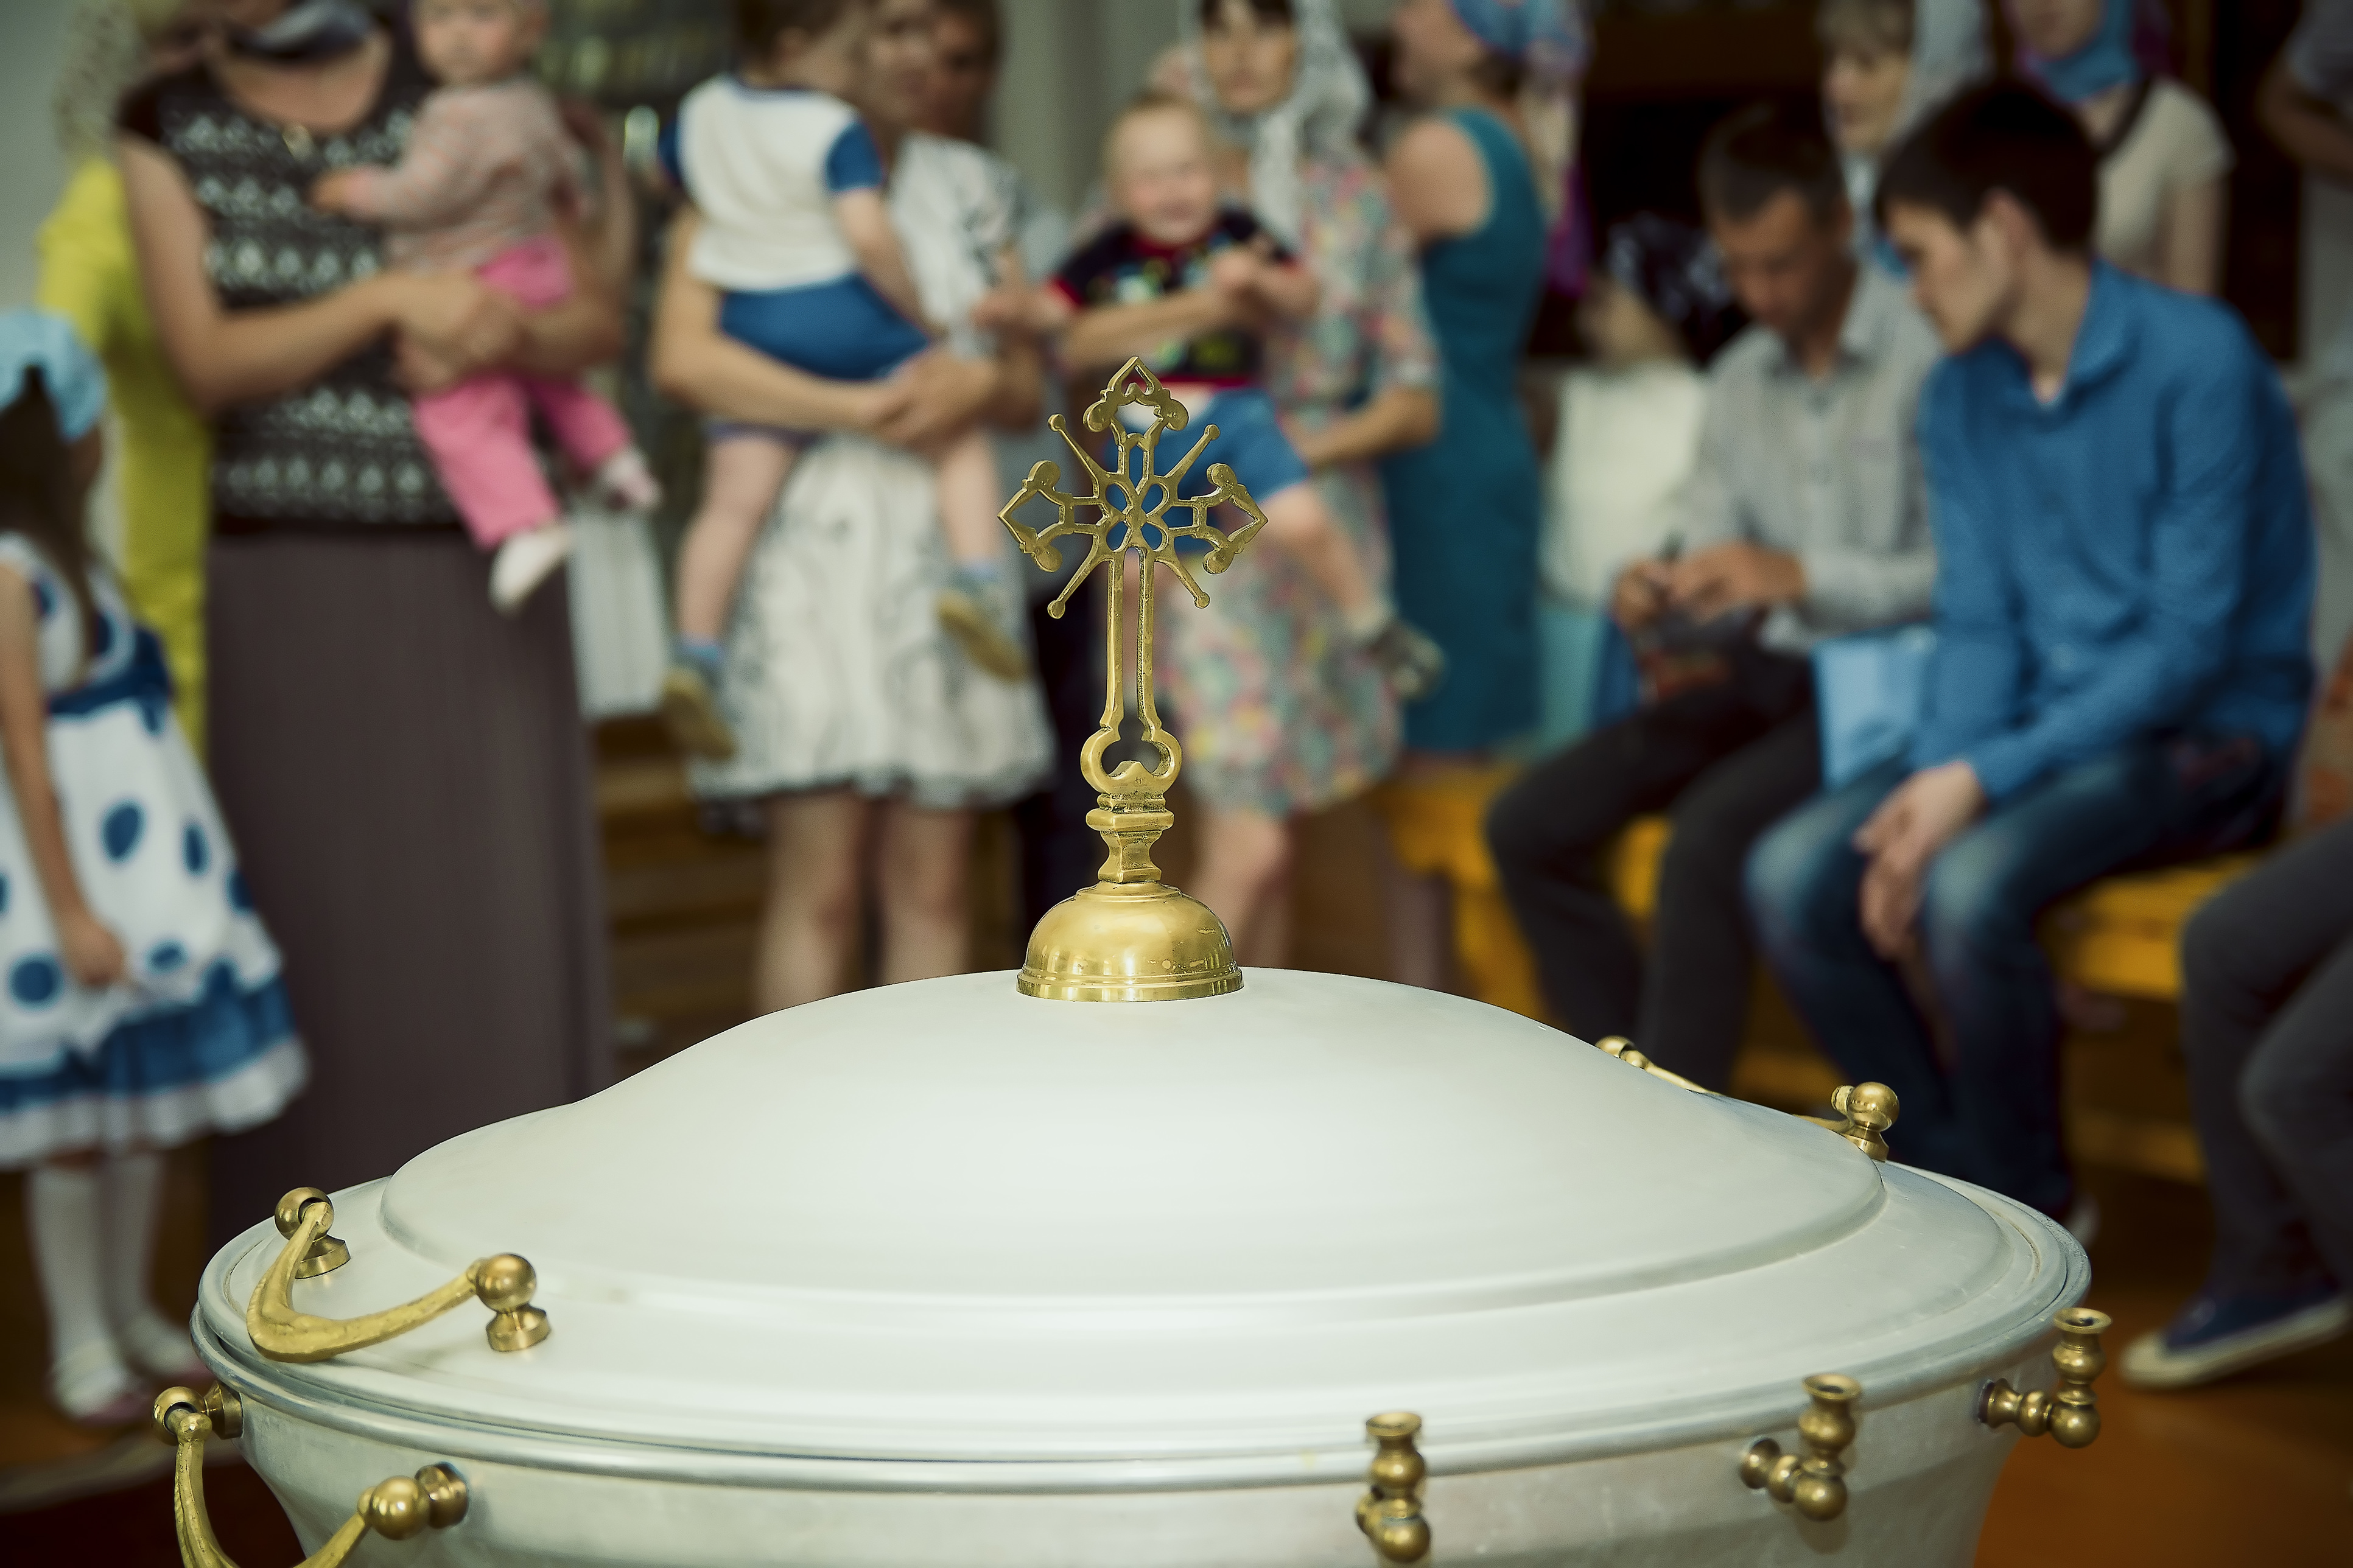 Greek orthodox christening traditions what is expected of guests at a greek christening biocorpaavc Choice Image